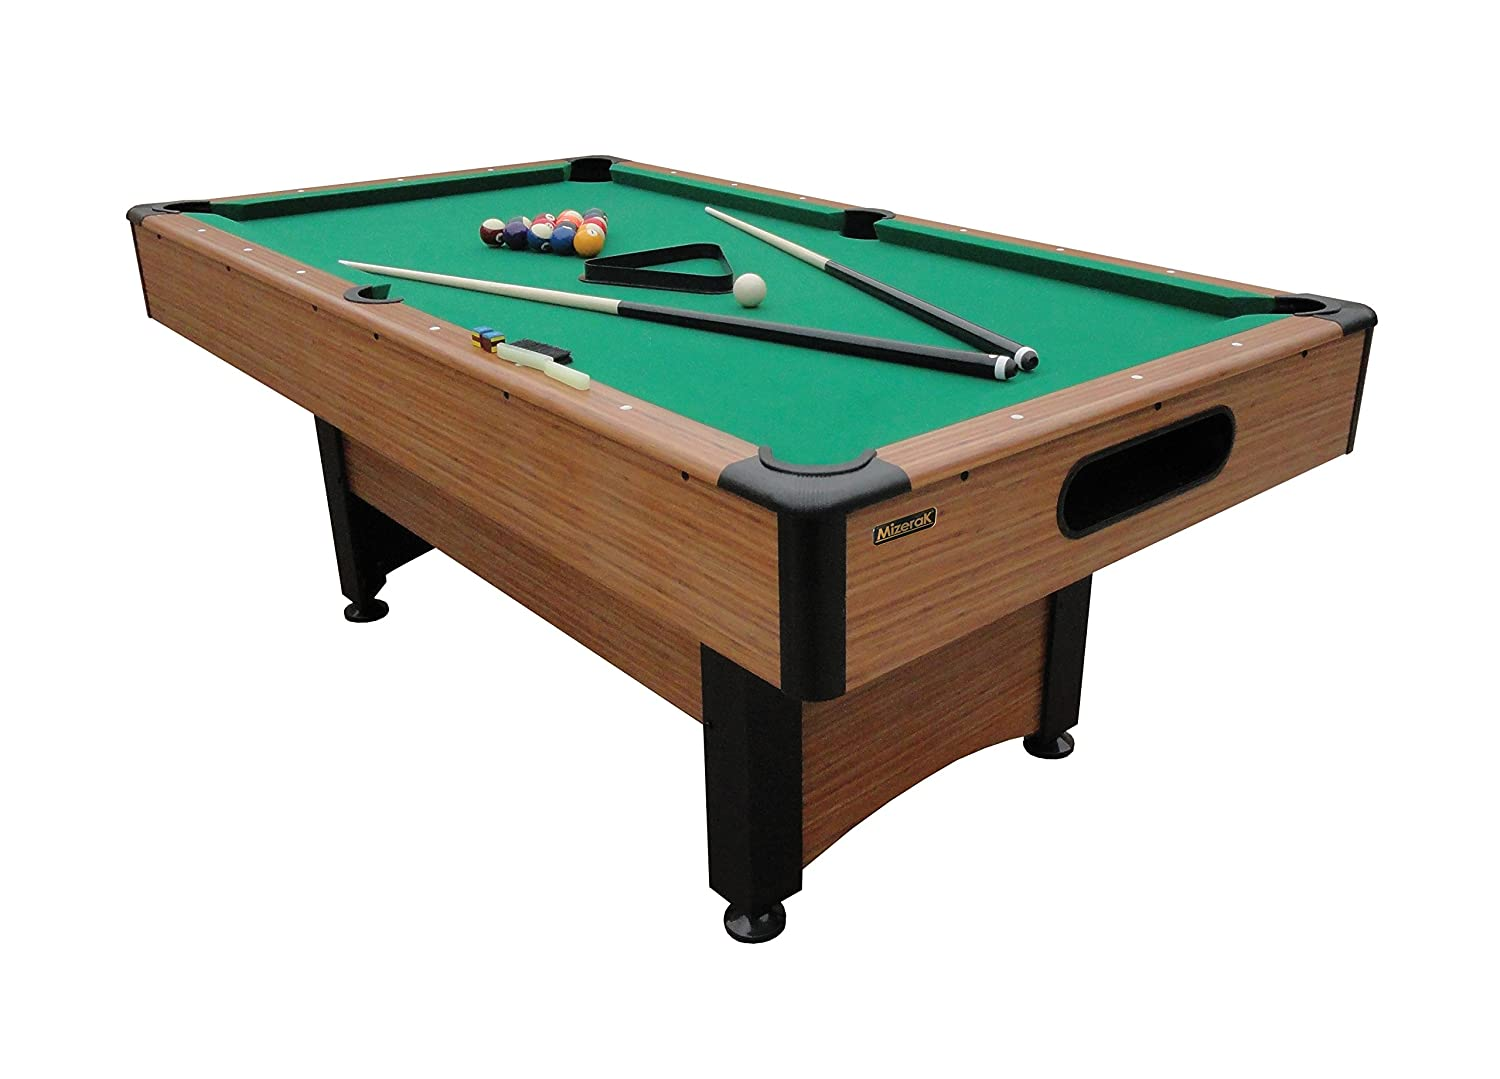 Mizerak dynasty 6 5 foot billiard table review for 10 foot pool table